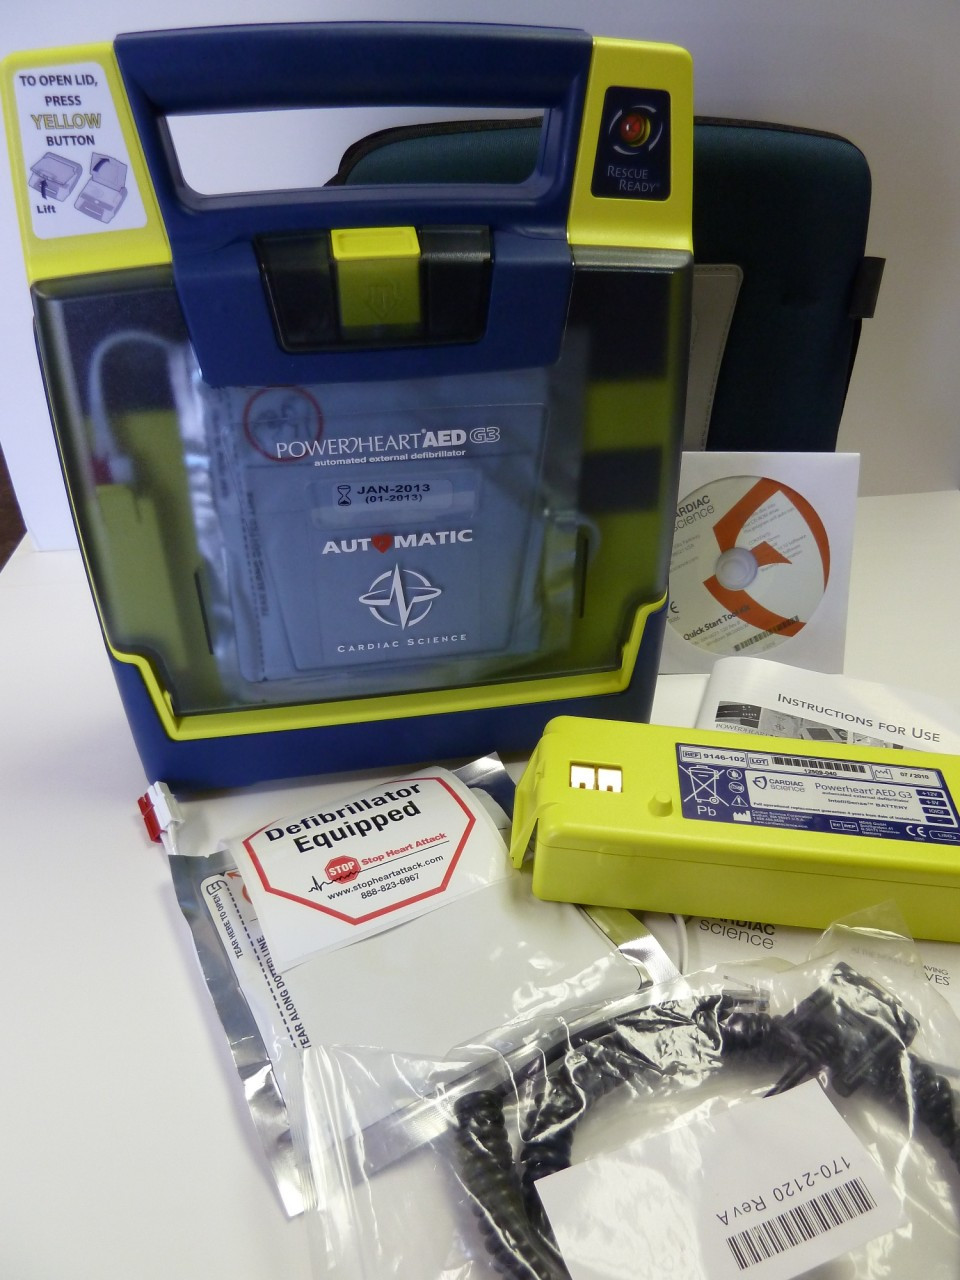 Cardiac Science Powerheart G3 Plus Includes battery, case, Cables, Software Labels and Forms